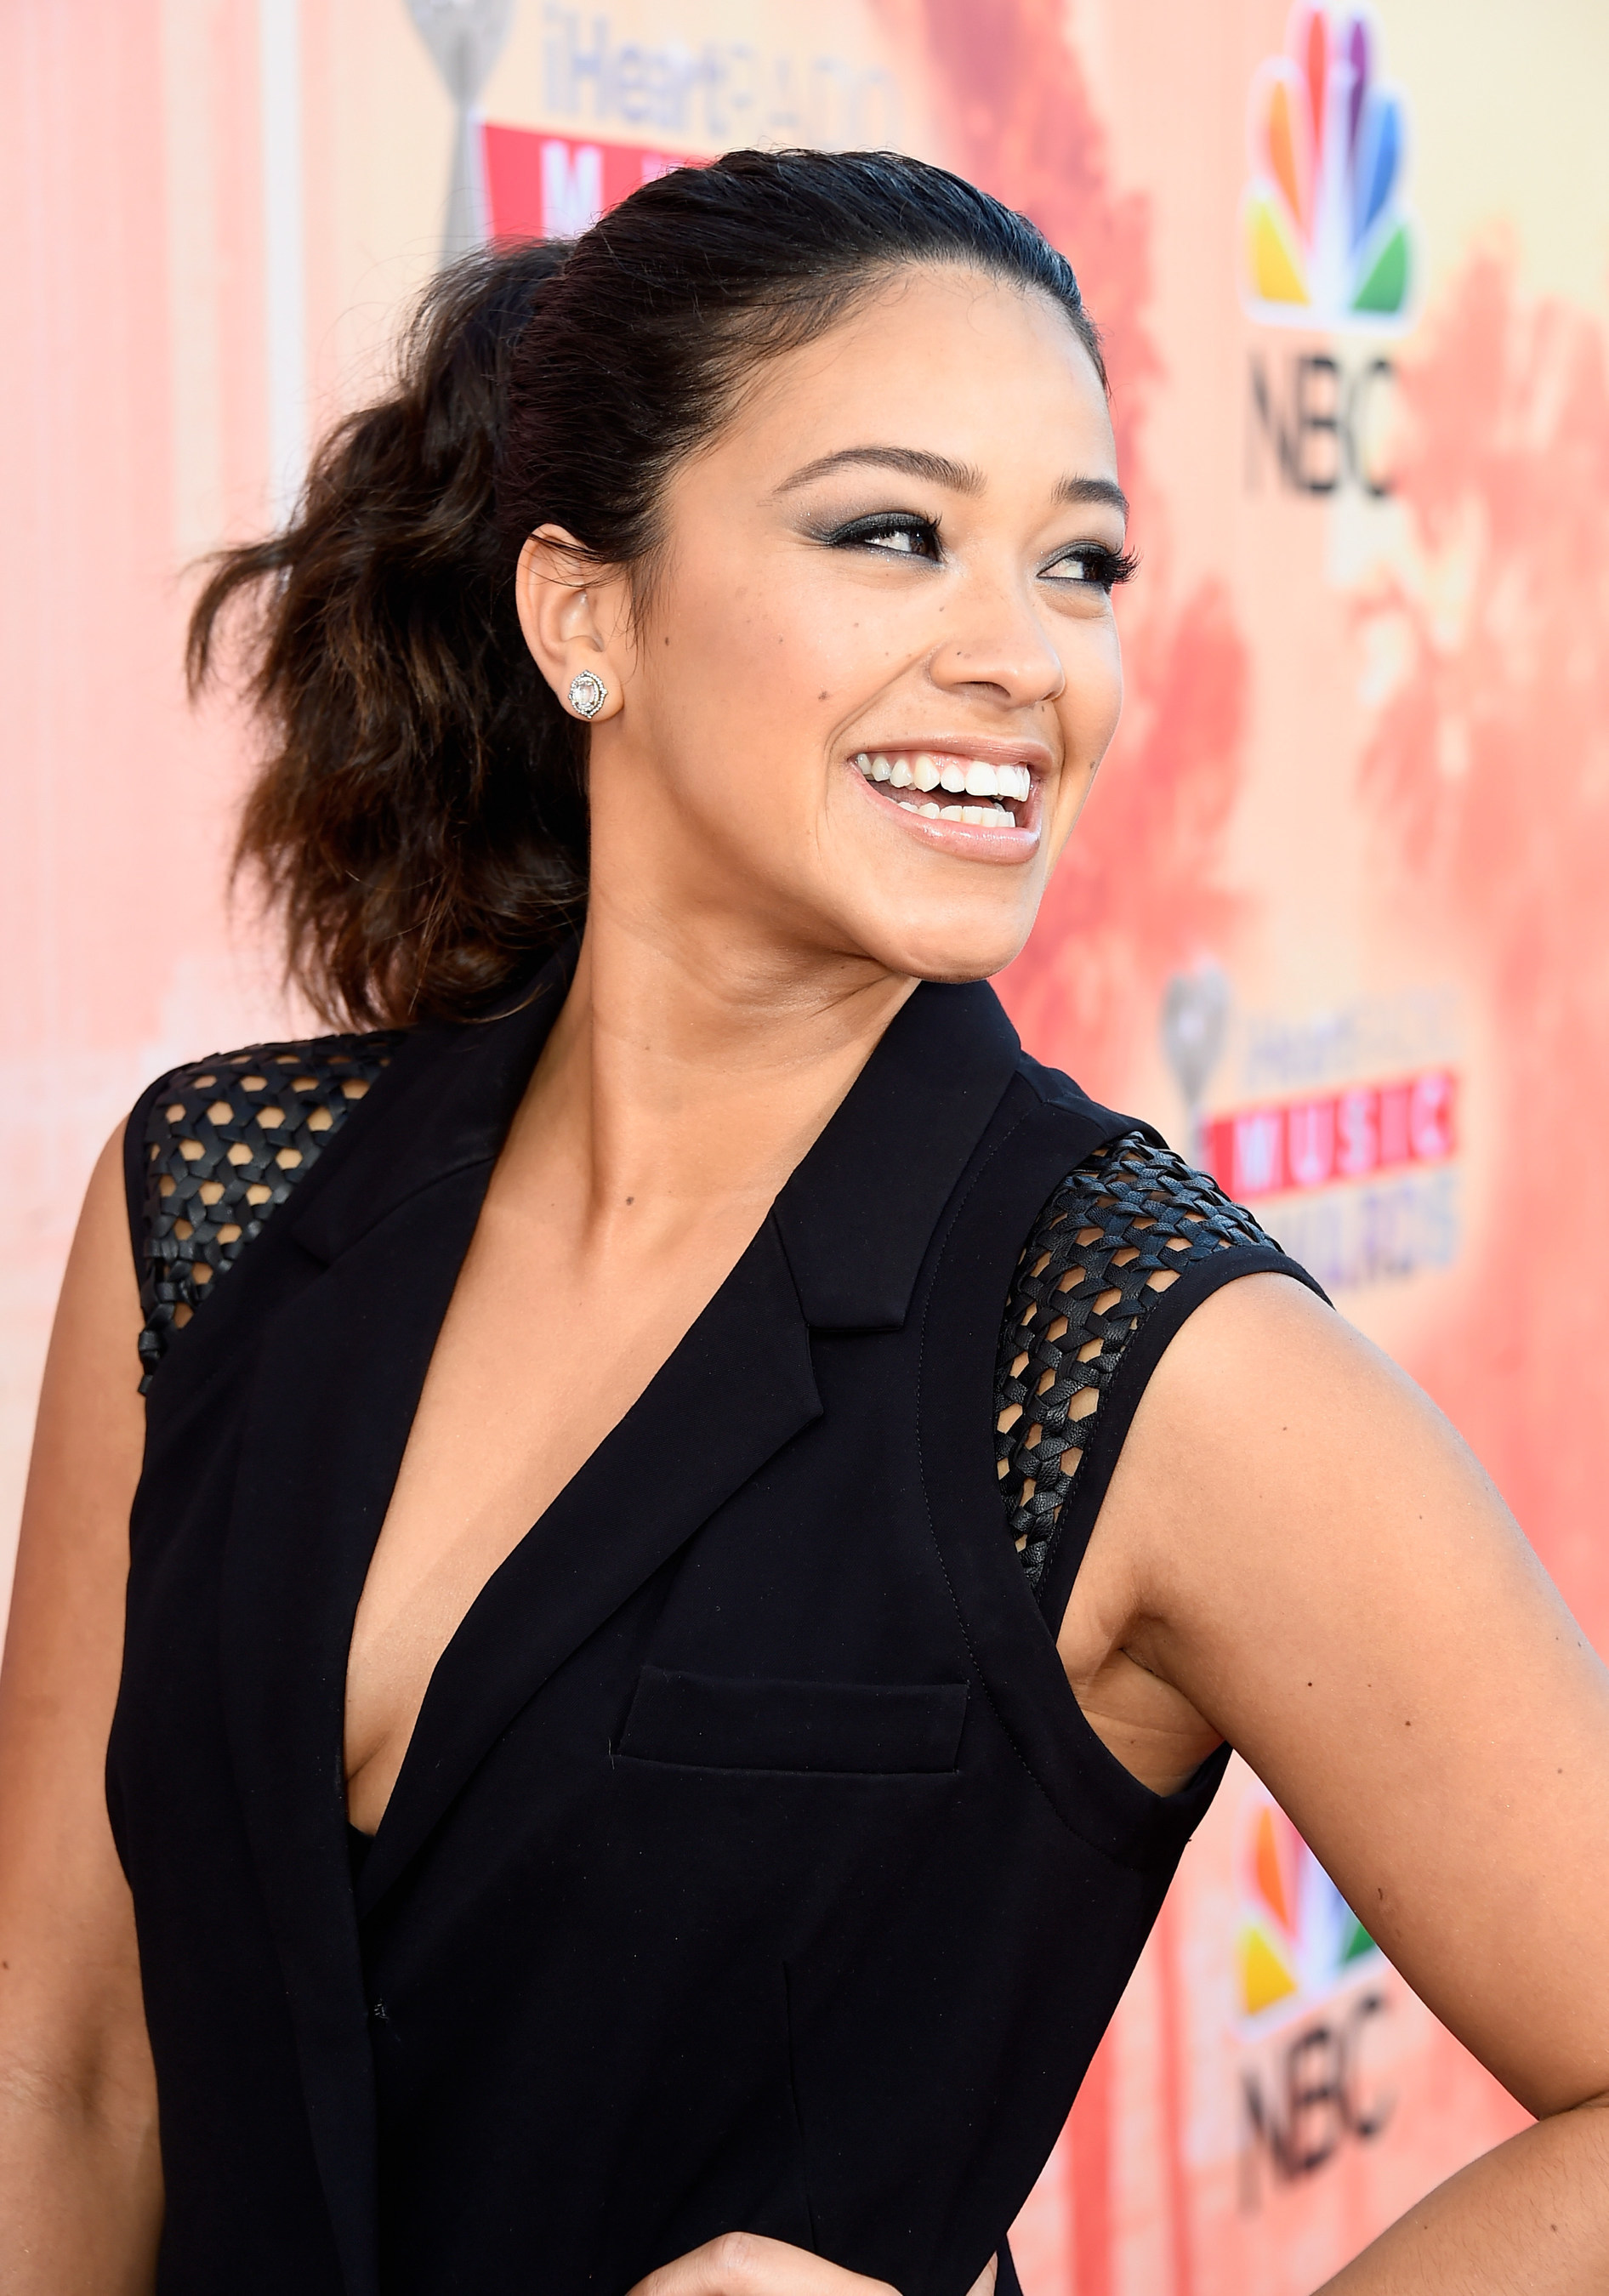 """Gina Rodriguez, star of """"Jane the Virgin,"""" supports CustomInk's 2015 """"Be Good to Each Other"""" bullying prevention campaign. Photo by Frazer Harrison / Getty Images Entertainment / Getty Images"""